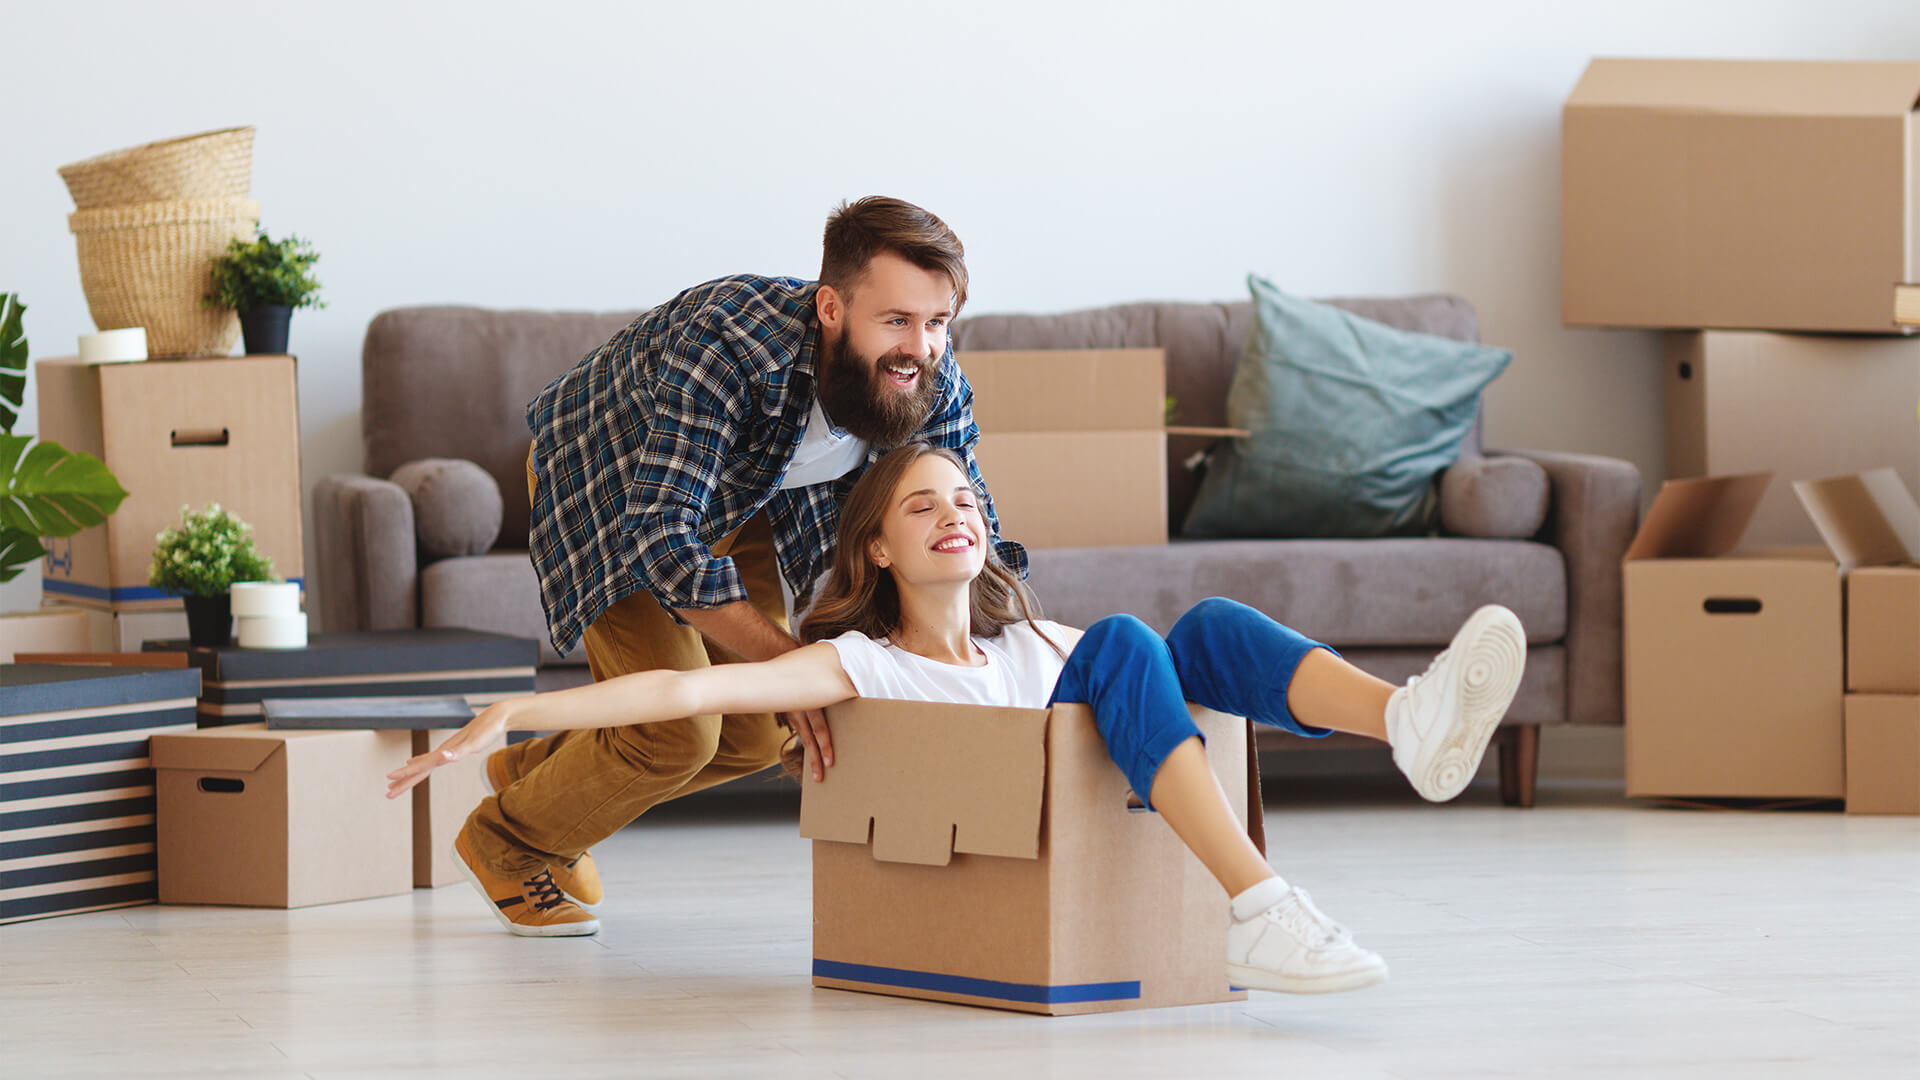 Happy Moving Couple into new home